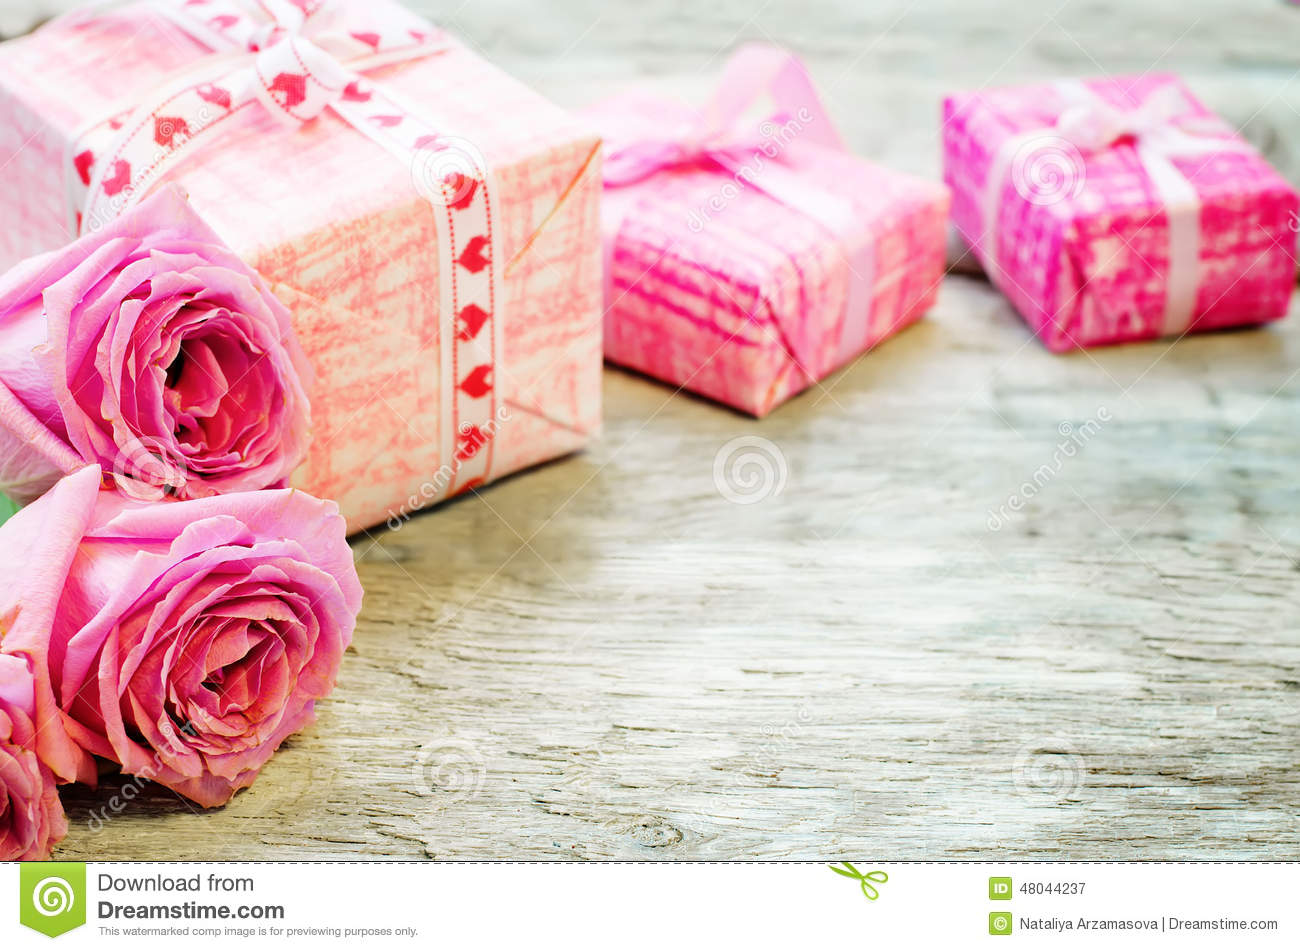 Valentines background with gifts and flowers stock image image of valentines background with gifts and flowers stock image image of romantic happiness 48044237 negle